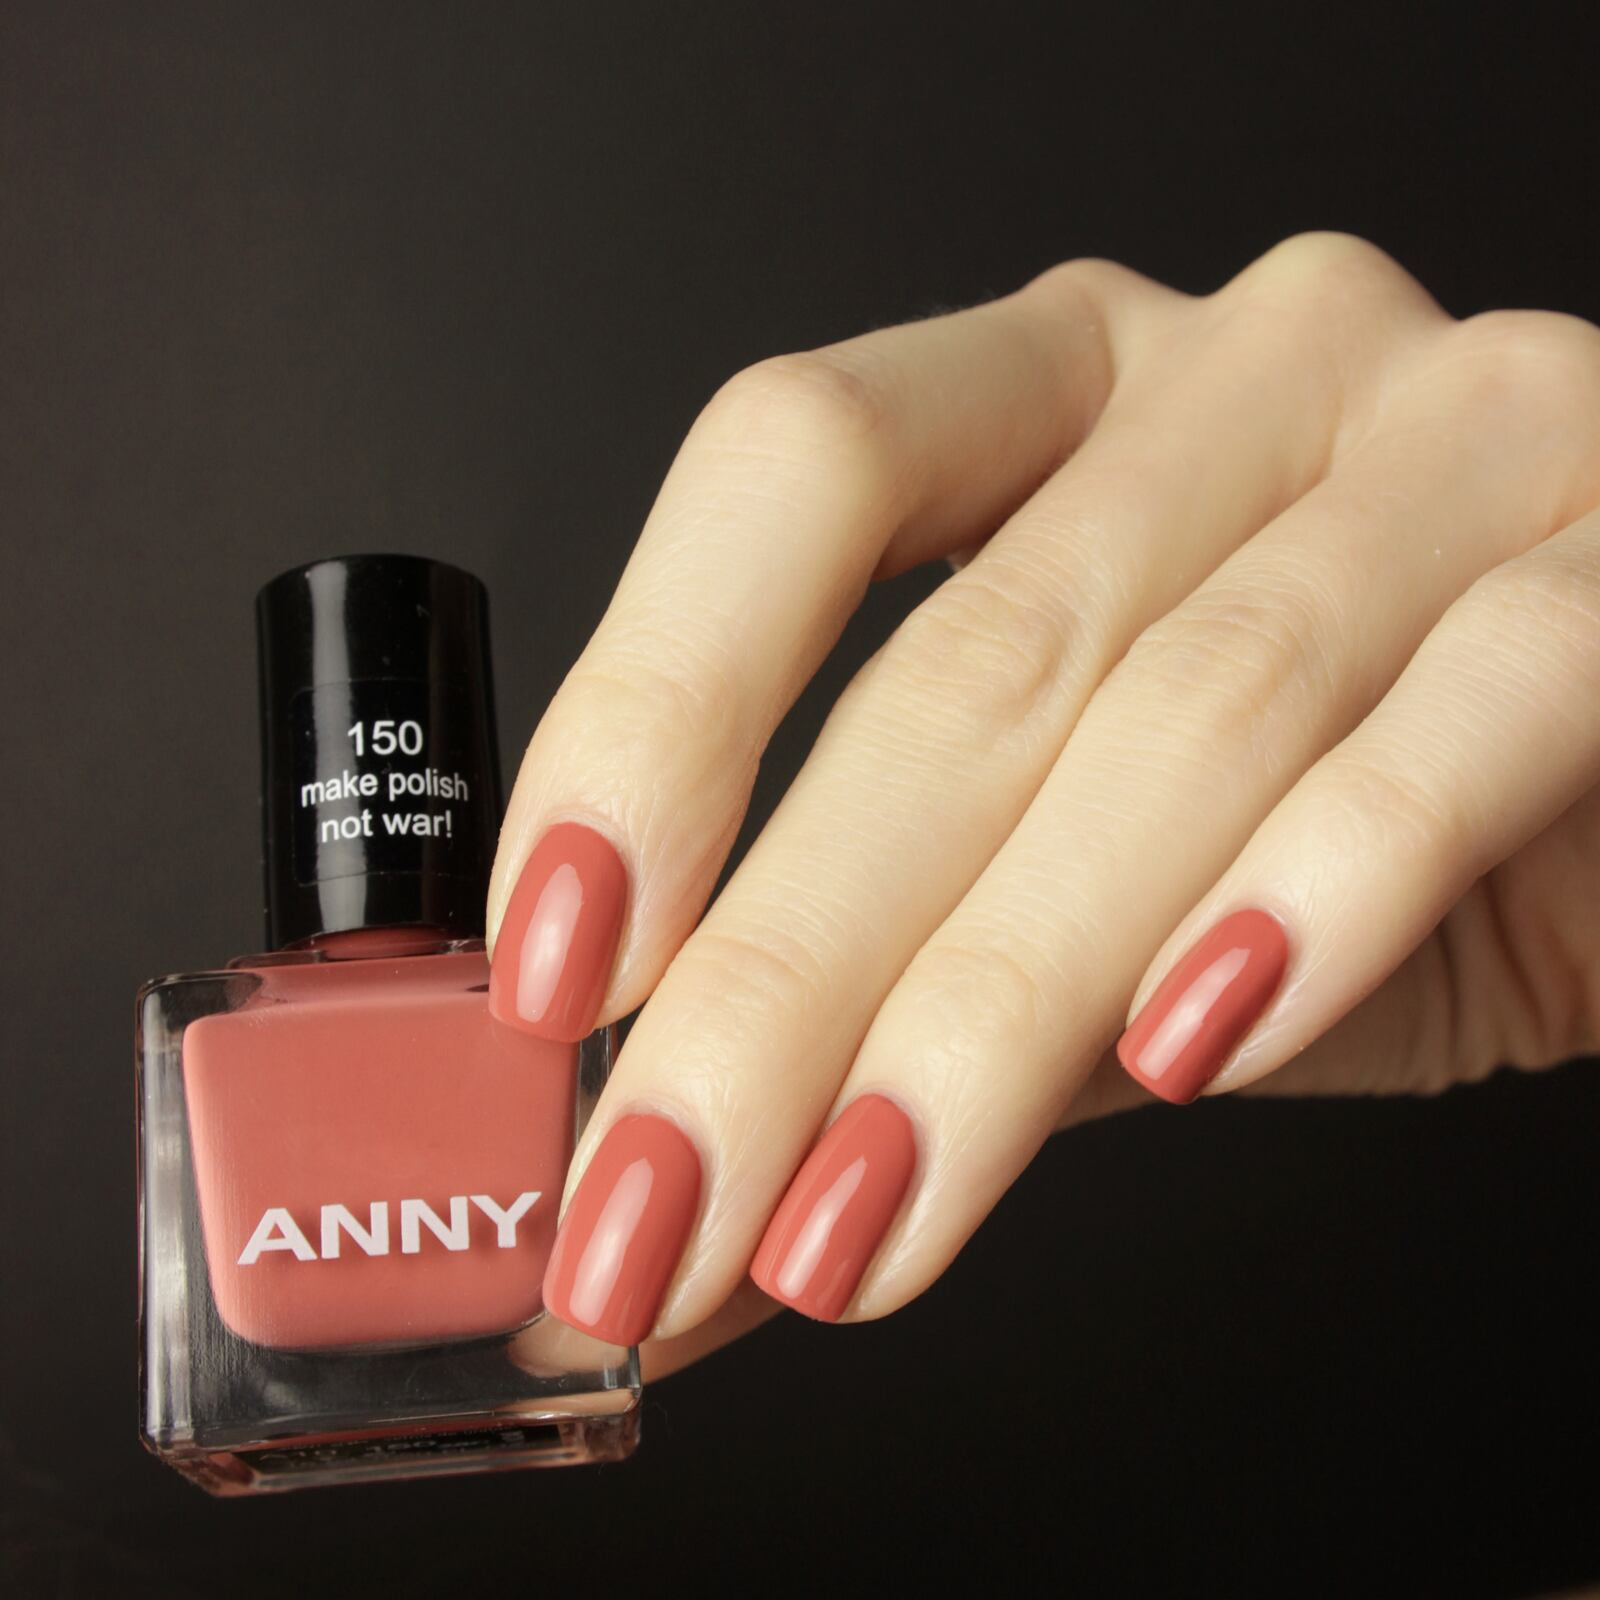 anny-make-polish-not-war-5